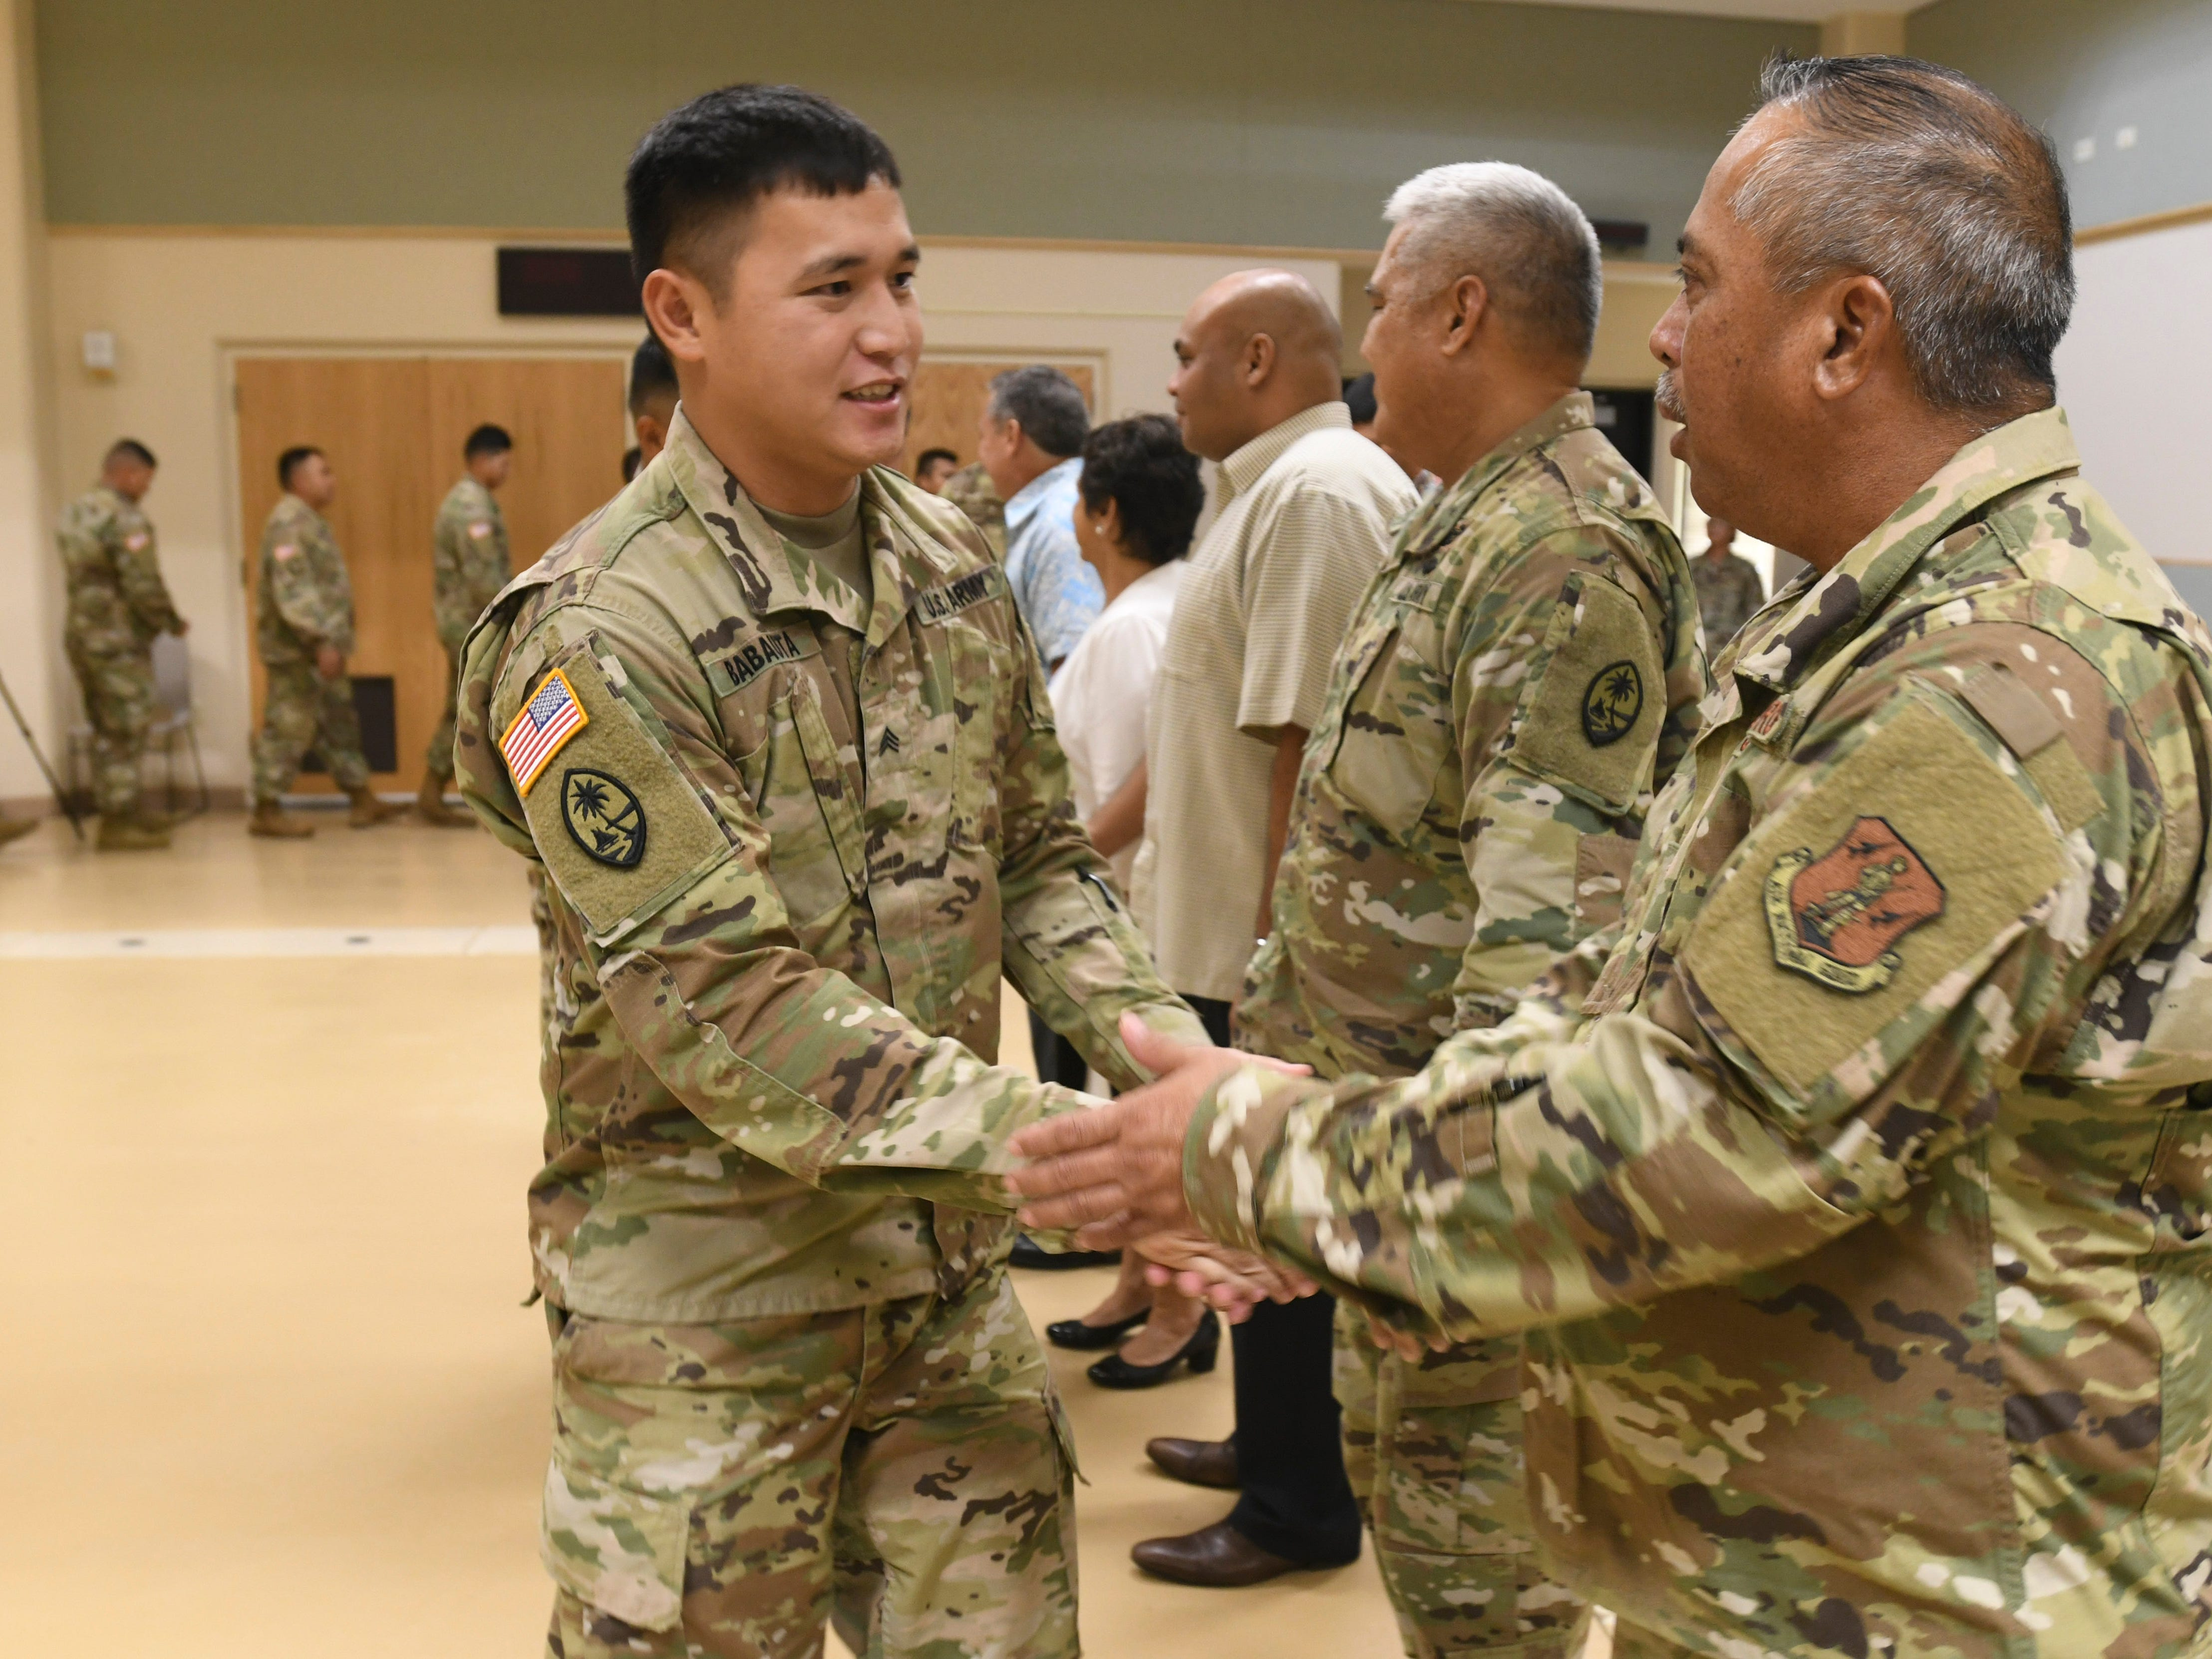 Seventy-one members with the Guam Army National Guard's 254th Security Forces 1st-294th Infantry Regiment are greeted by the official party during a mobilization ceremony held at the Guam National Guard compound in Barrigada on Thursday, Jan. 3, 2019. Family, friends and other supporters attended the event with the soldiers as they prepare to undertake a yearlong mission to provide security for the Terminal High Altitude Area Defense Site at Andersen Air Force Base, according to a Guard release.